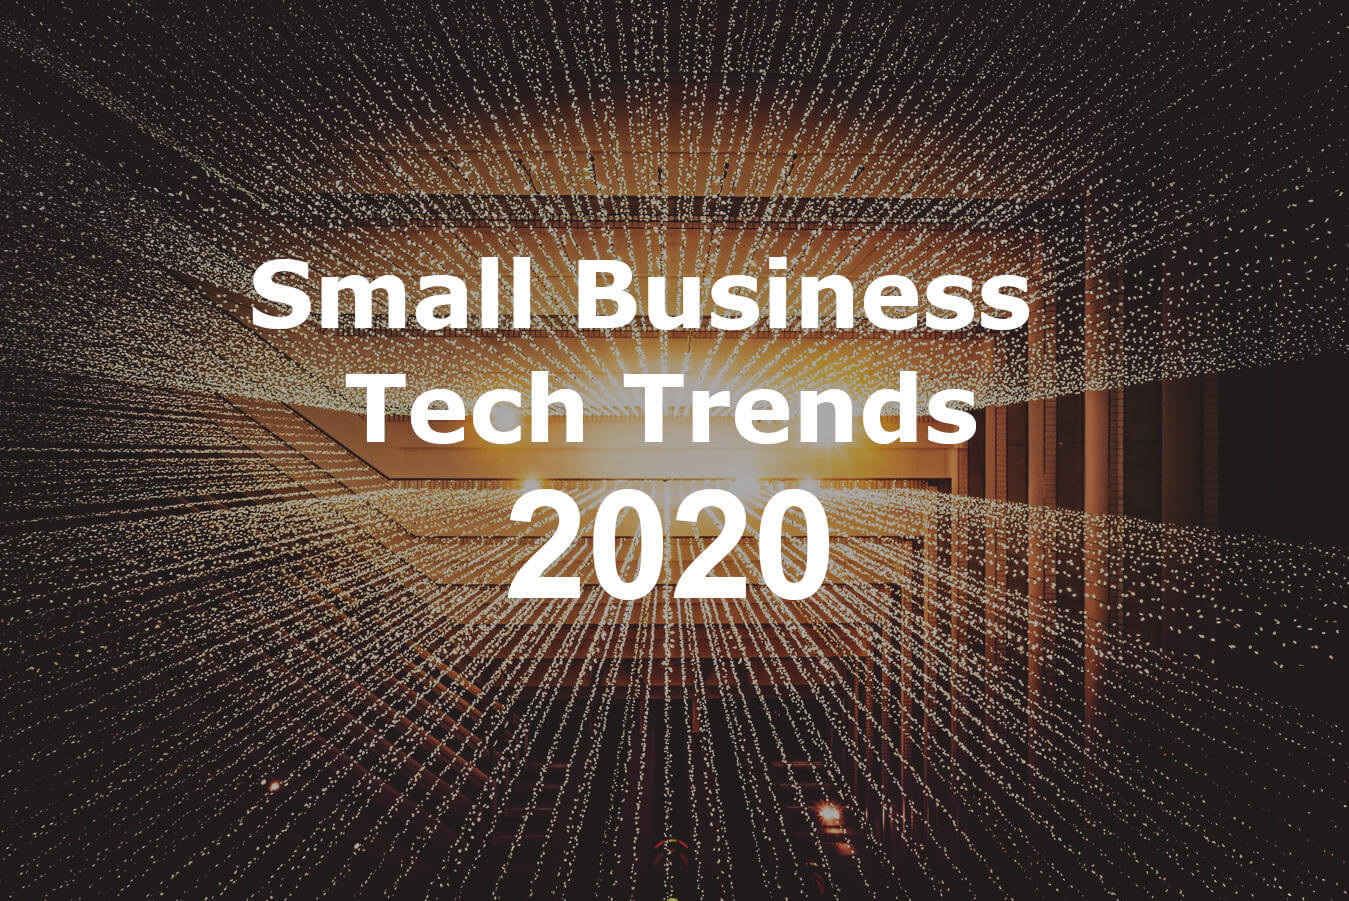 Small business tech trends in 2020